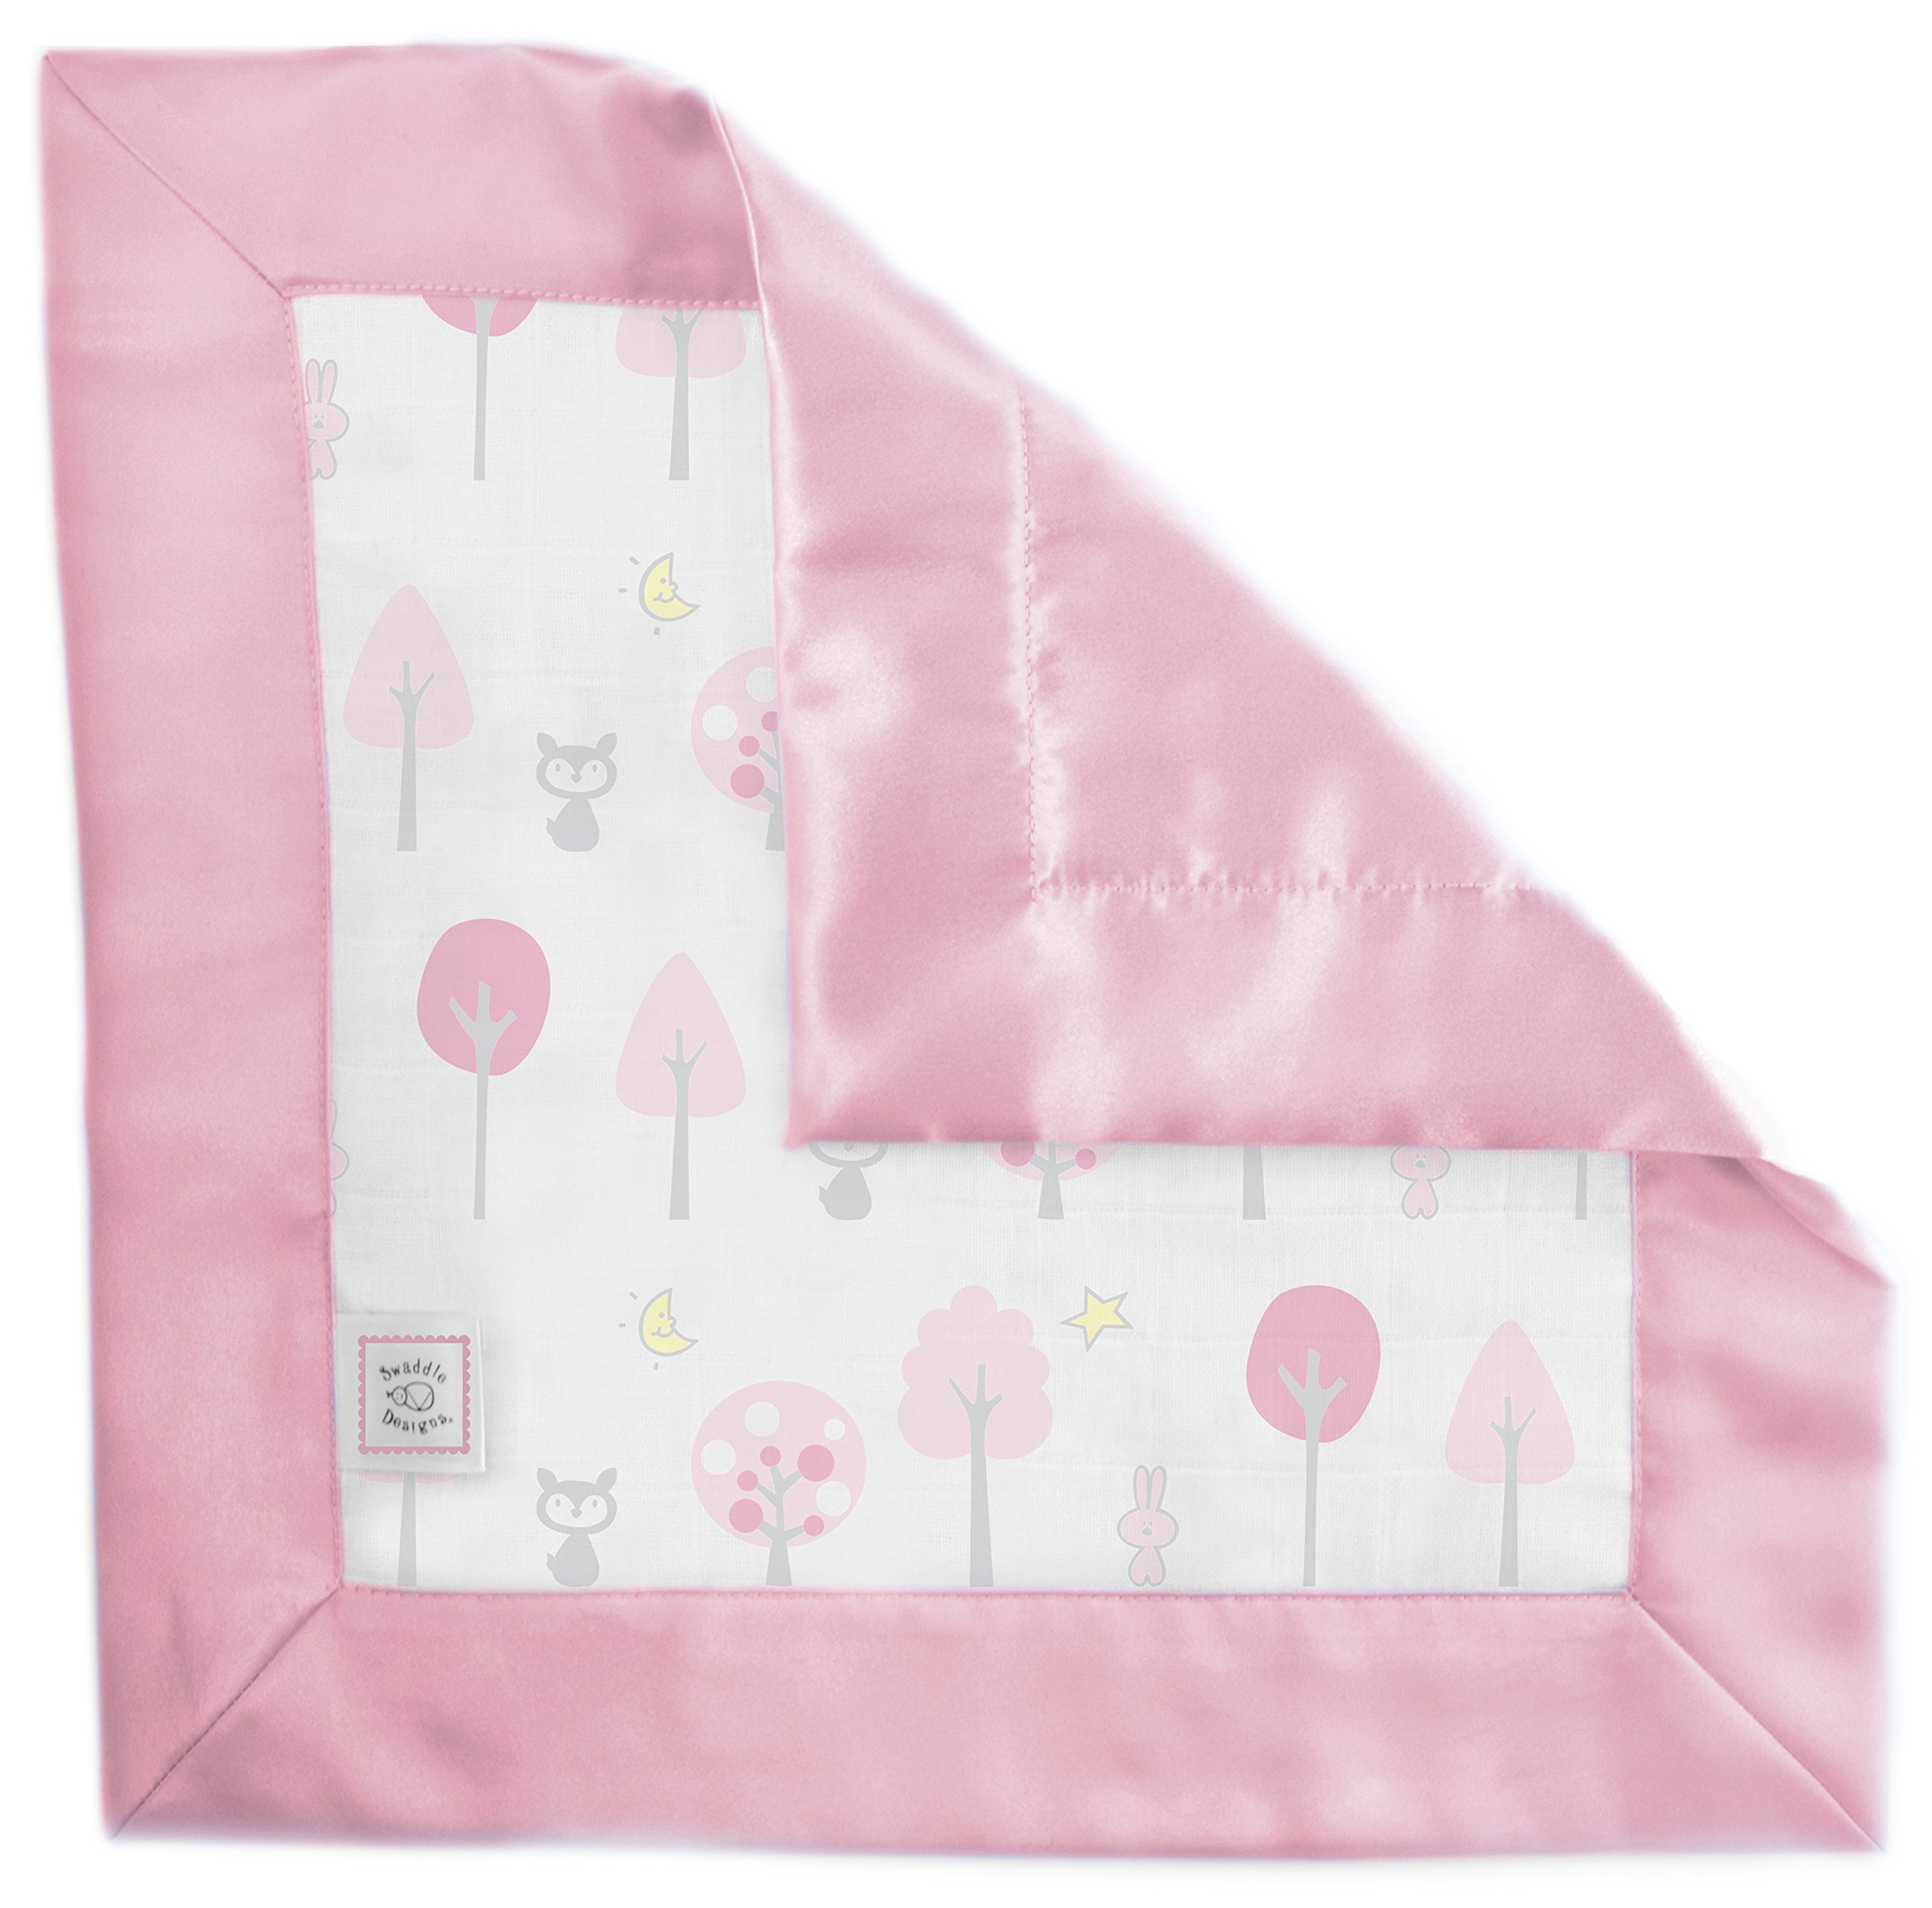 SwaddleDesigns Cotton Muslin Baby Lovie, Small Security Blanket, Pink Thicket with Satin Trim